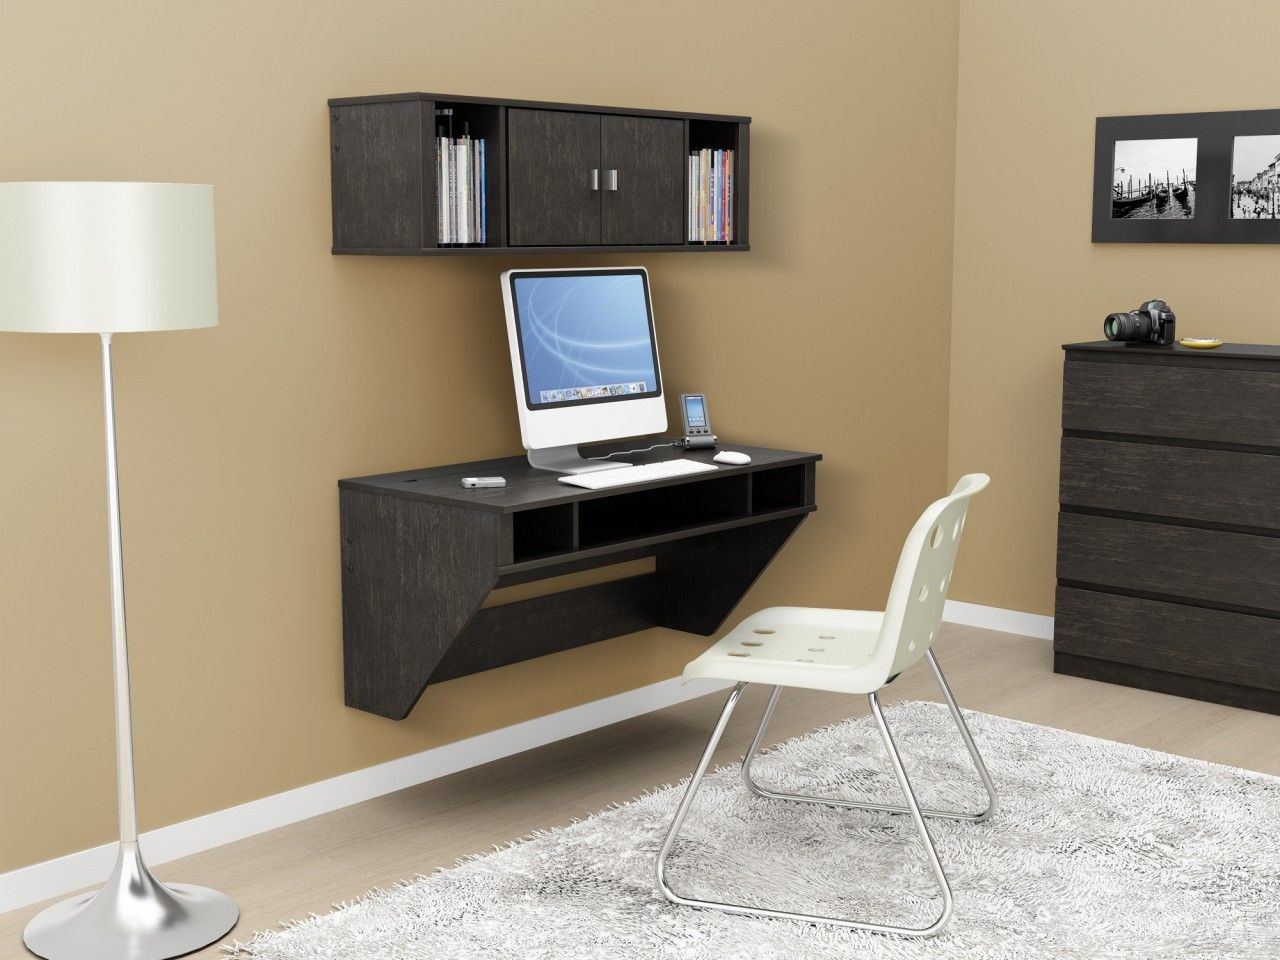 ikea computer desks small spaces home. Fascinating Furniture Ikea Wooden Computer Desks For Small Spaces Home Office With Black Cabinet 4